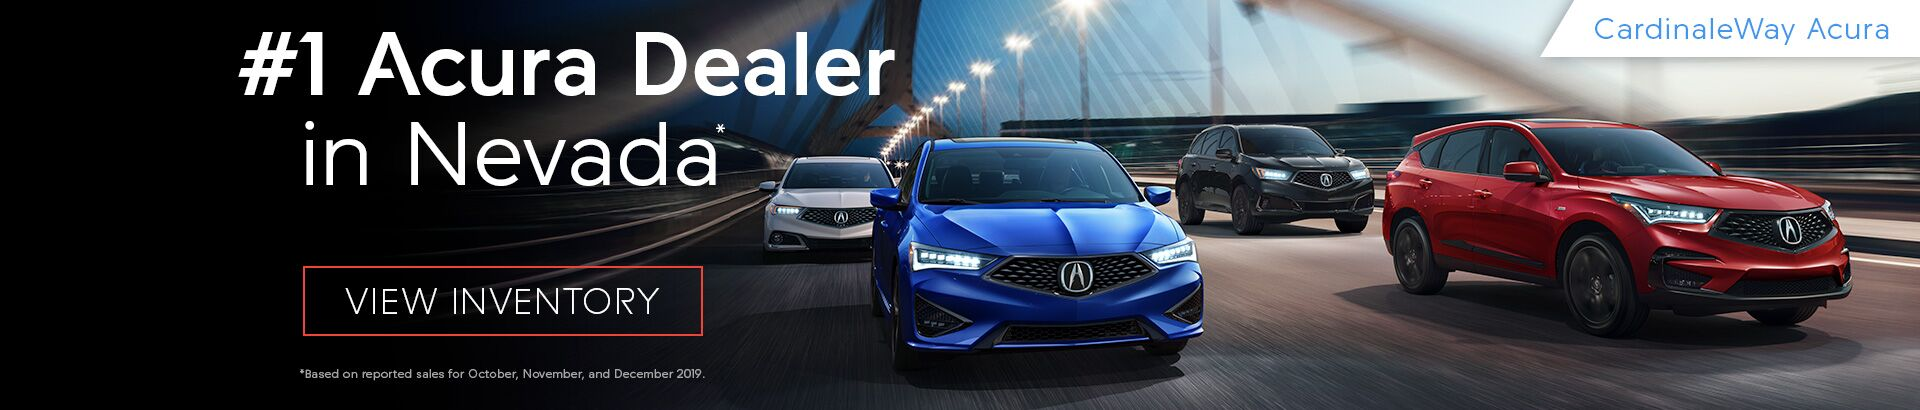 #1 Acura Dealer in Nevada